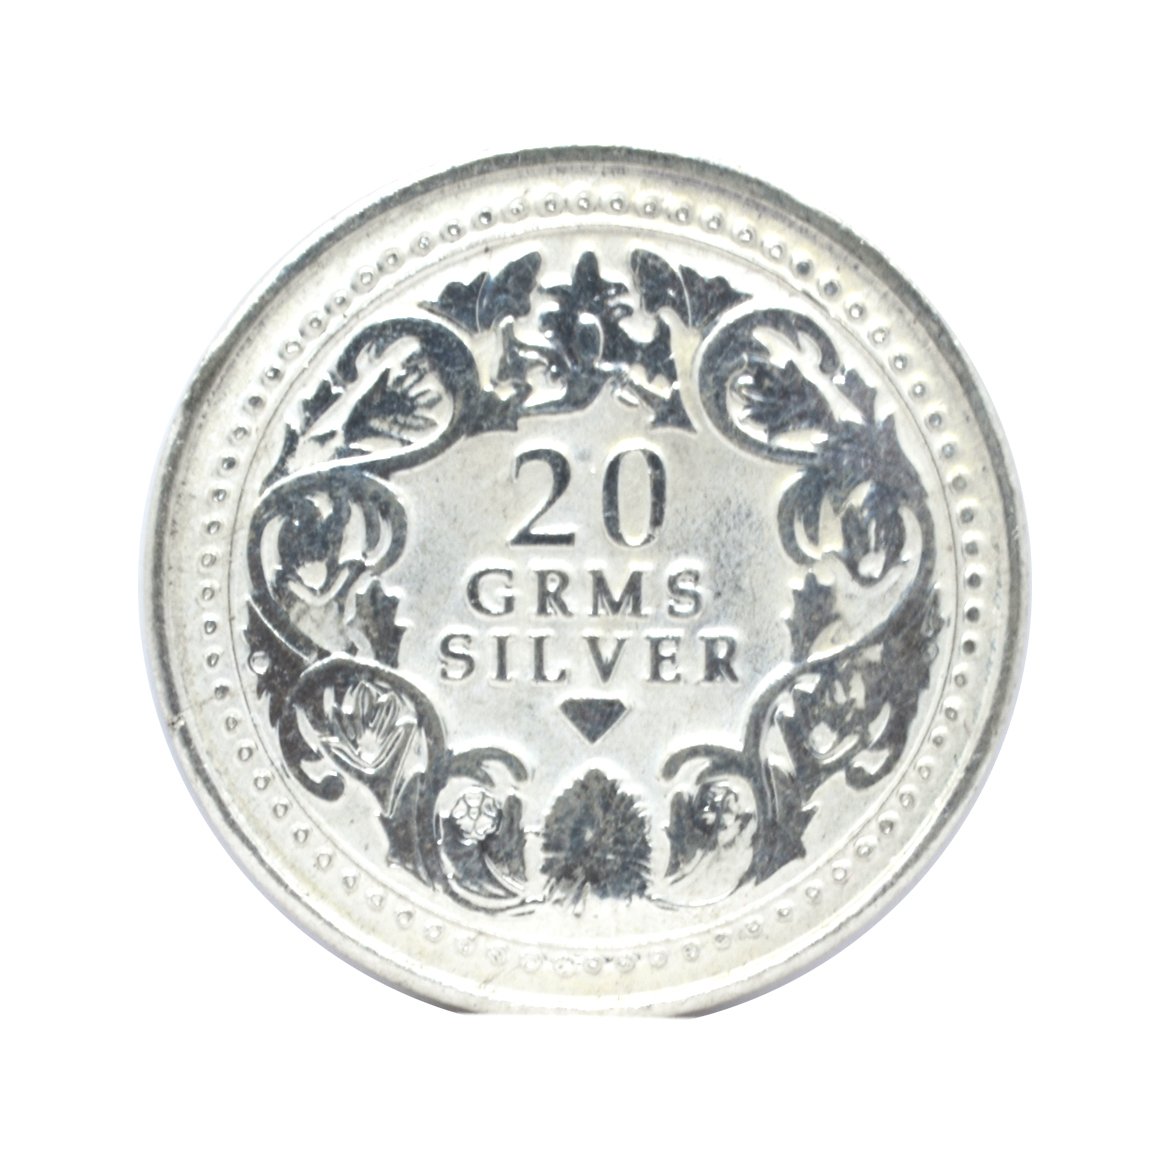 20 Grams, 999 Pure Silver Coin